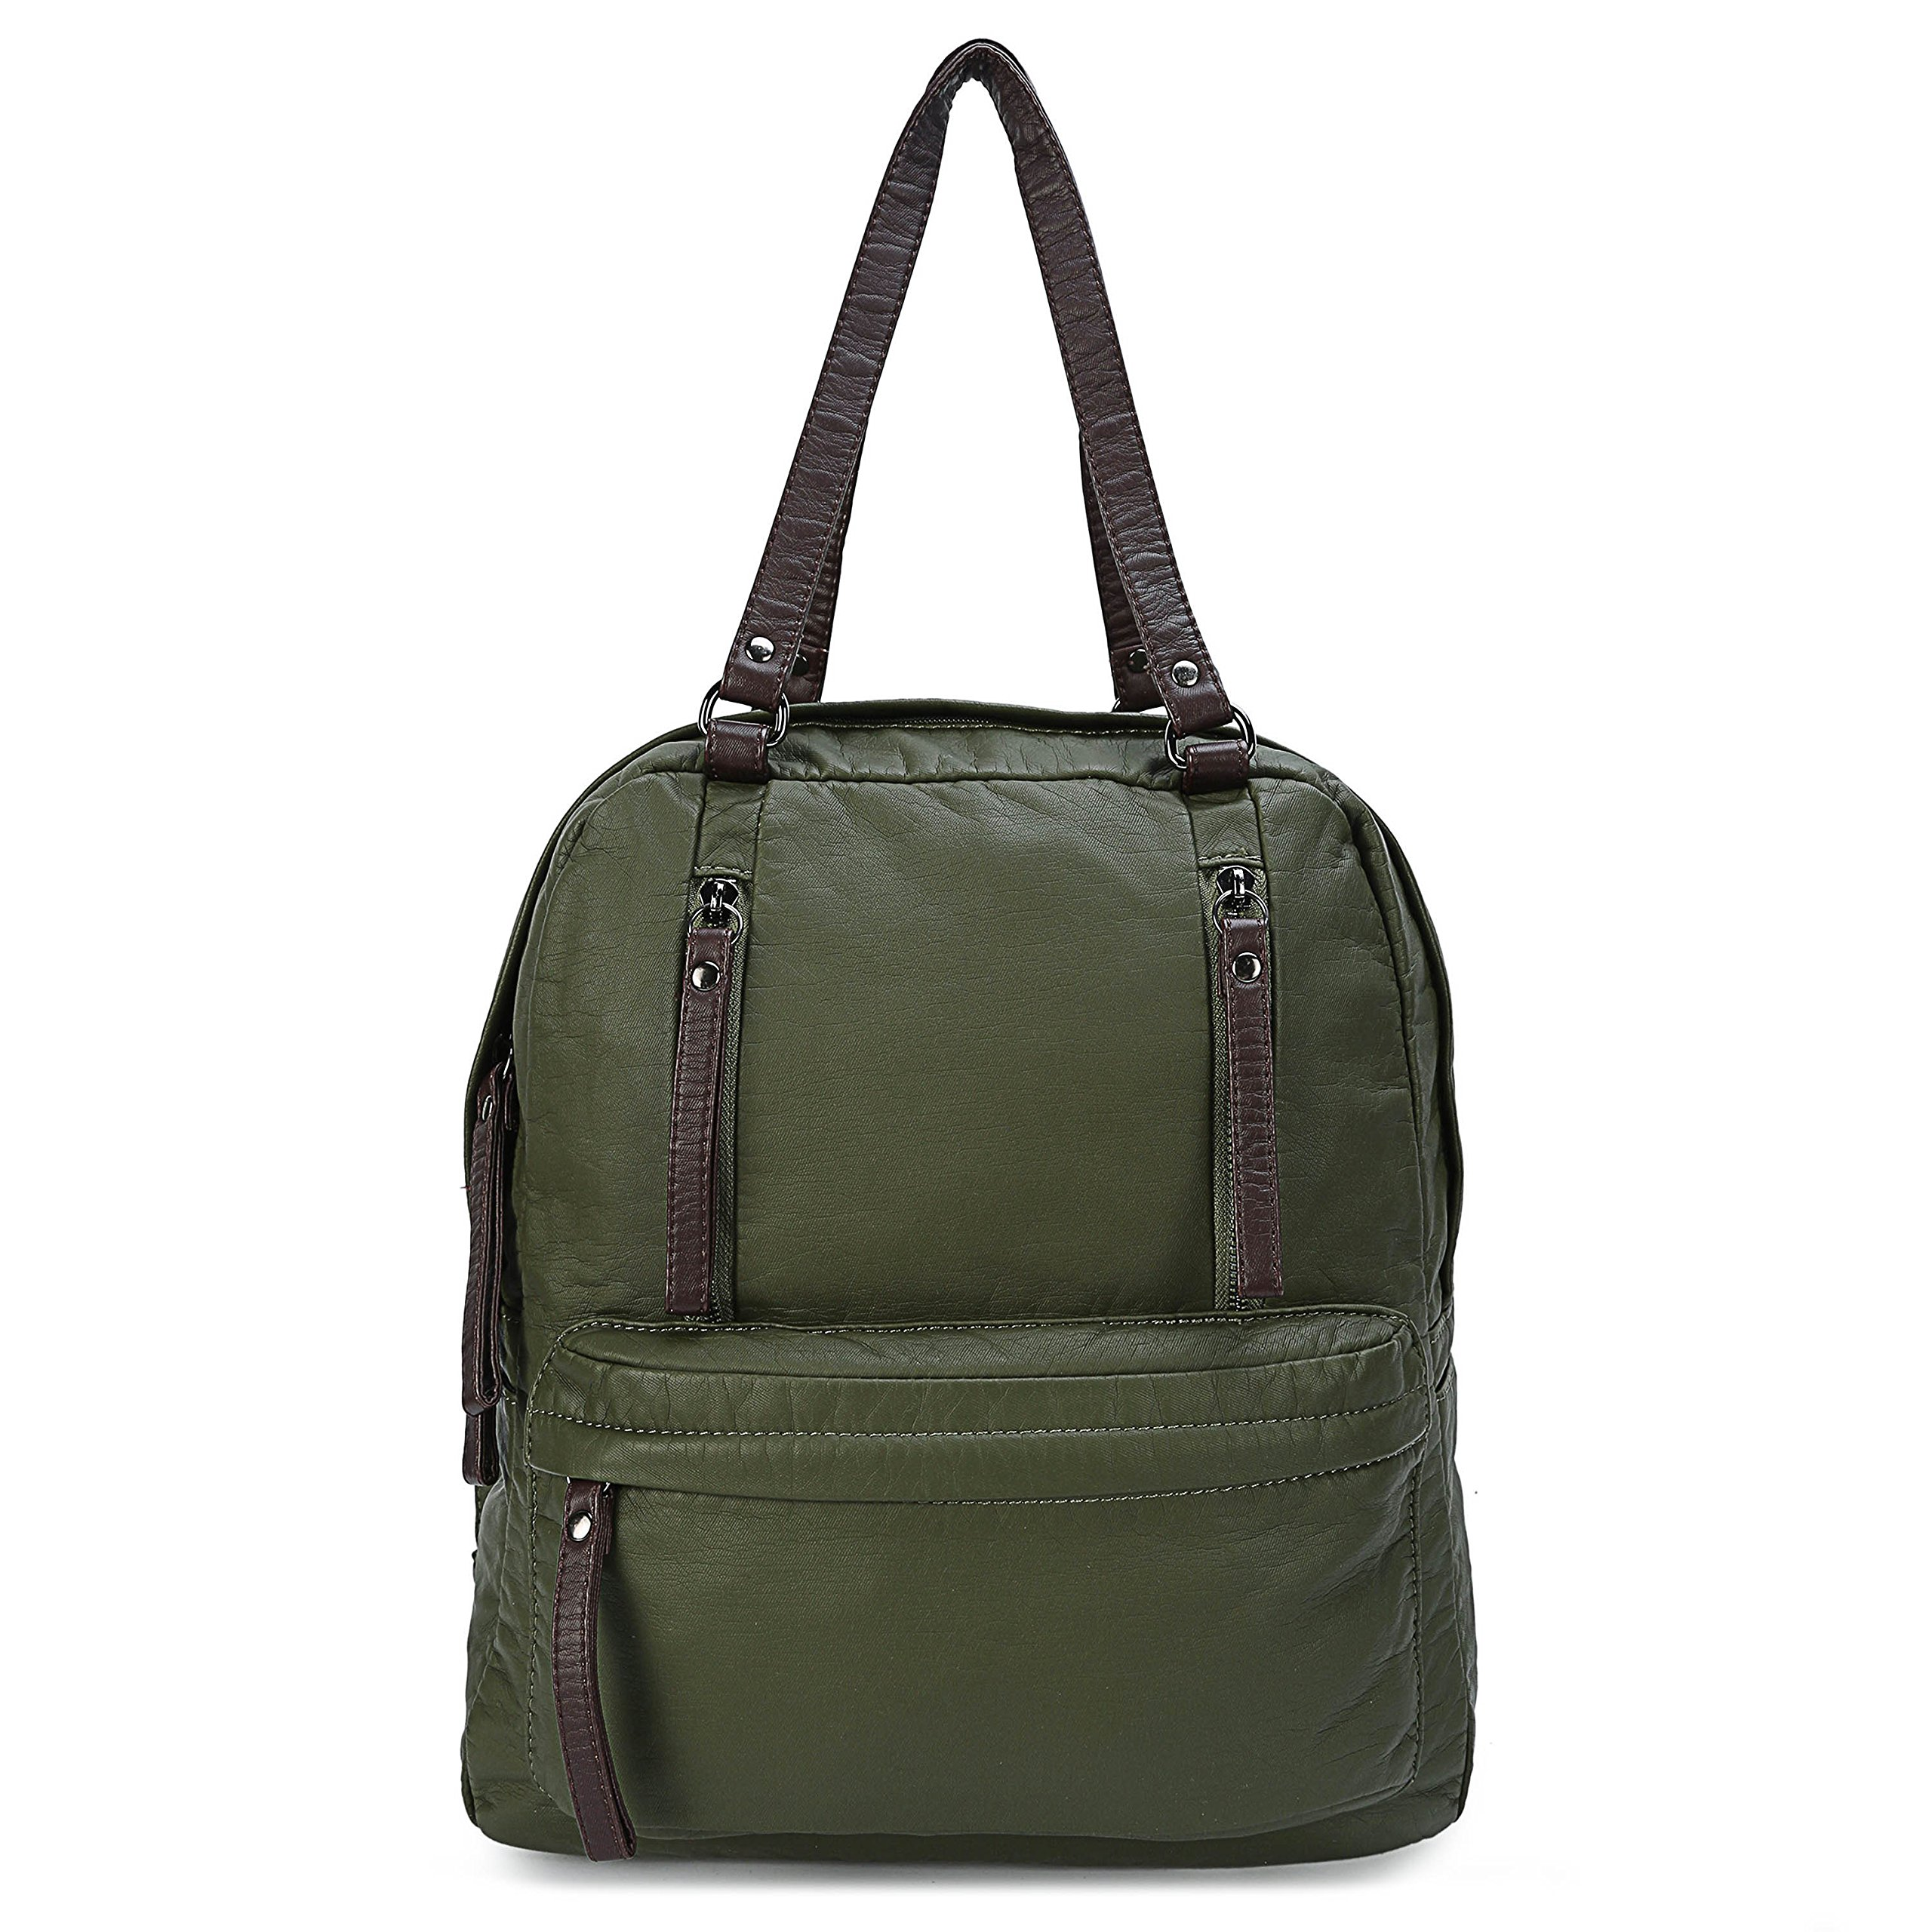 Convertible Backpack Purse for Women Small Soft Leather Travel Bag for Ladies Shoulder Bag Army Green